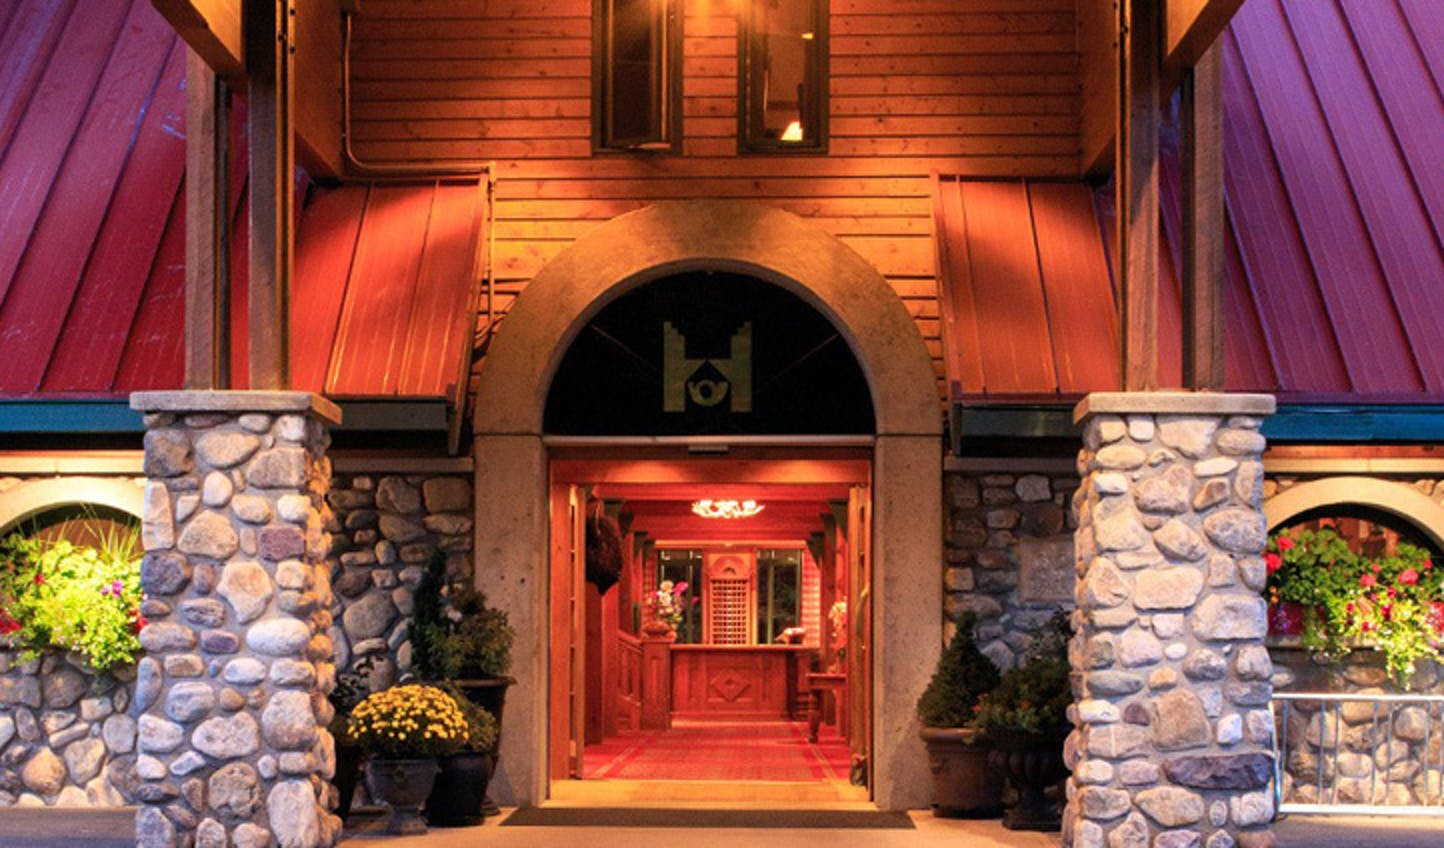 The entrance to The Post Hotel & Spa, Canada